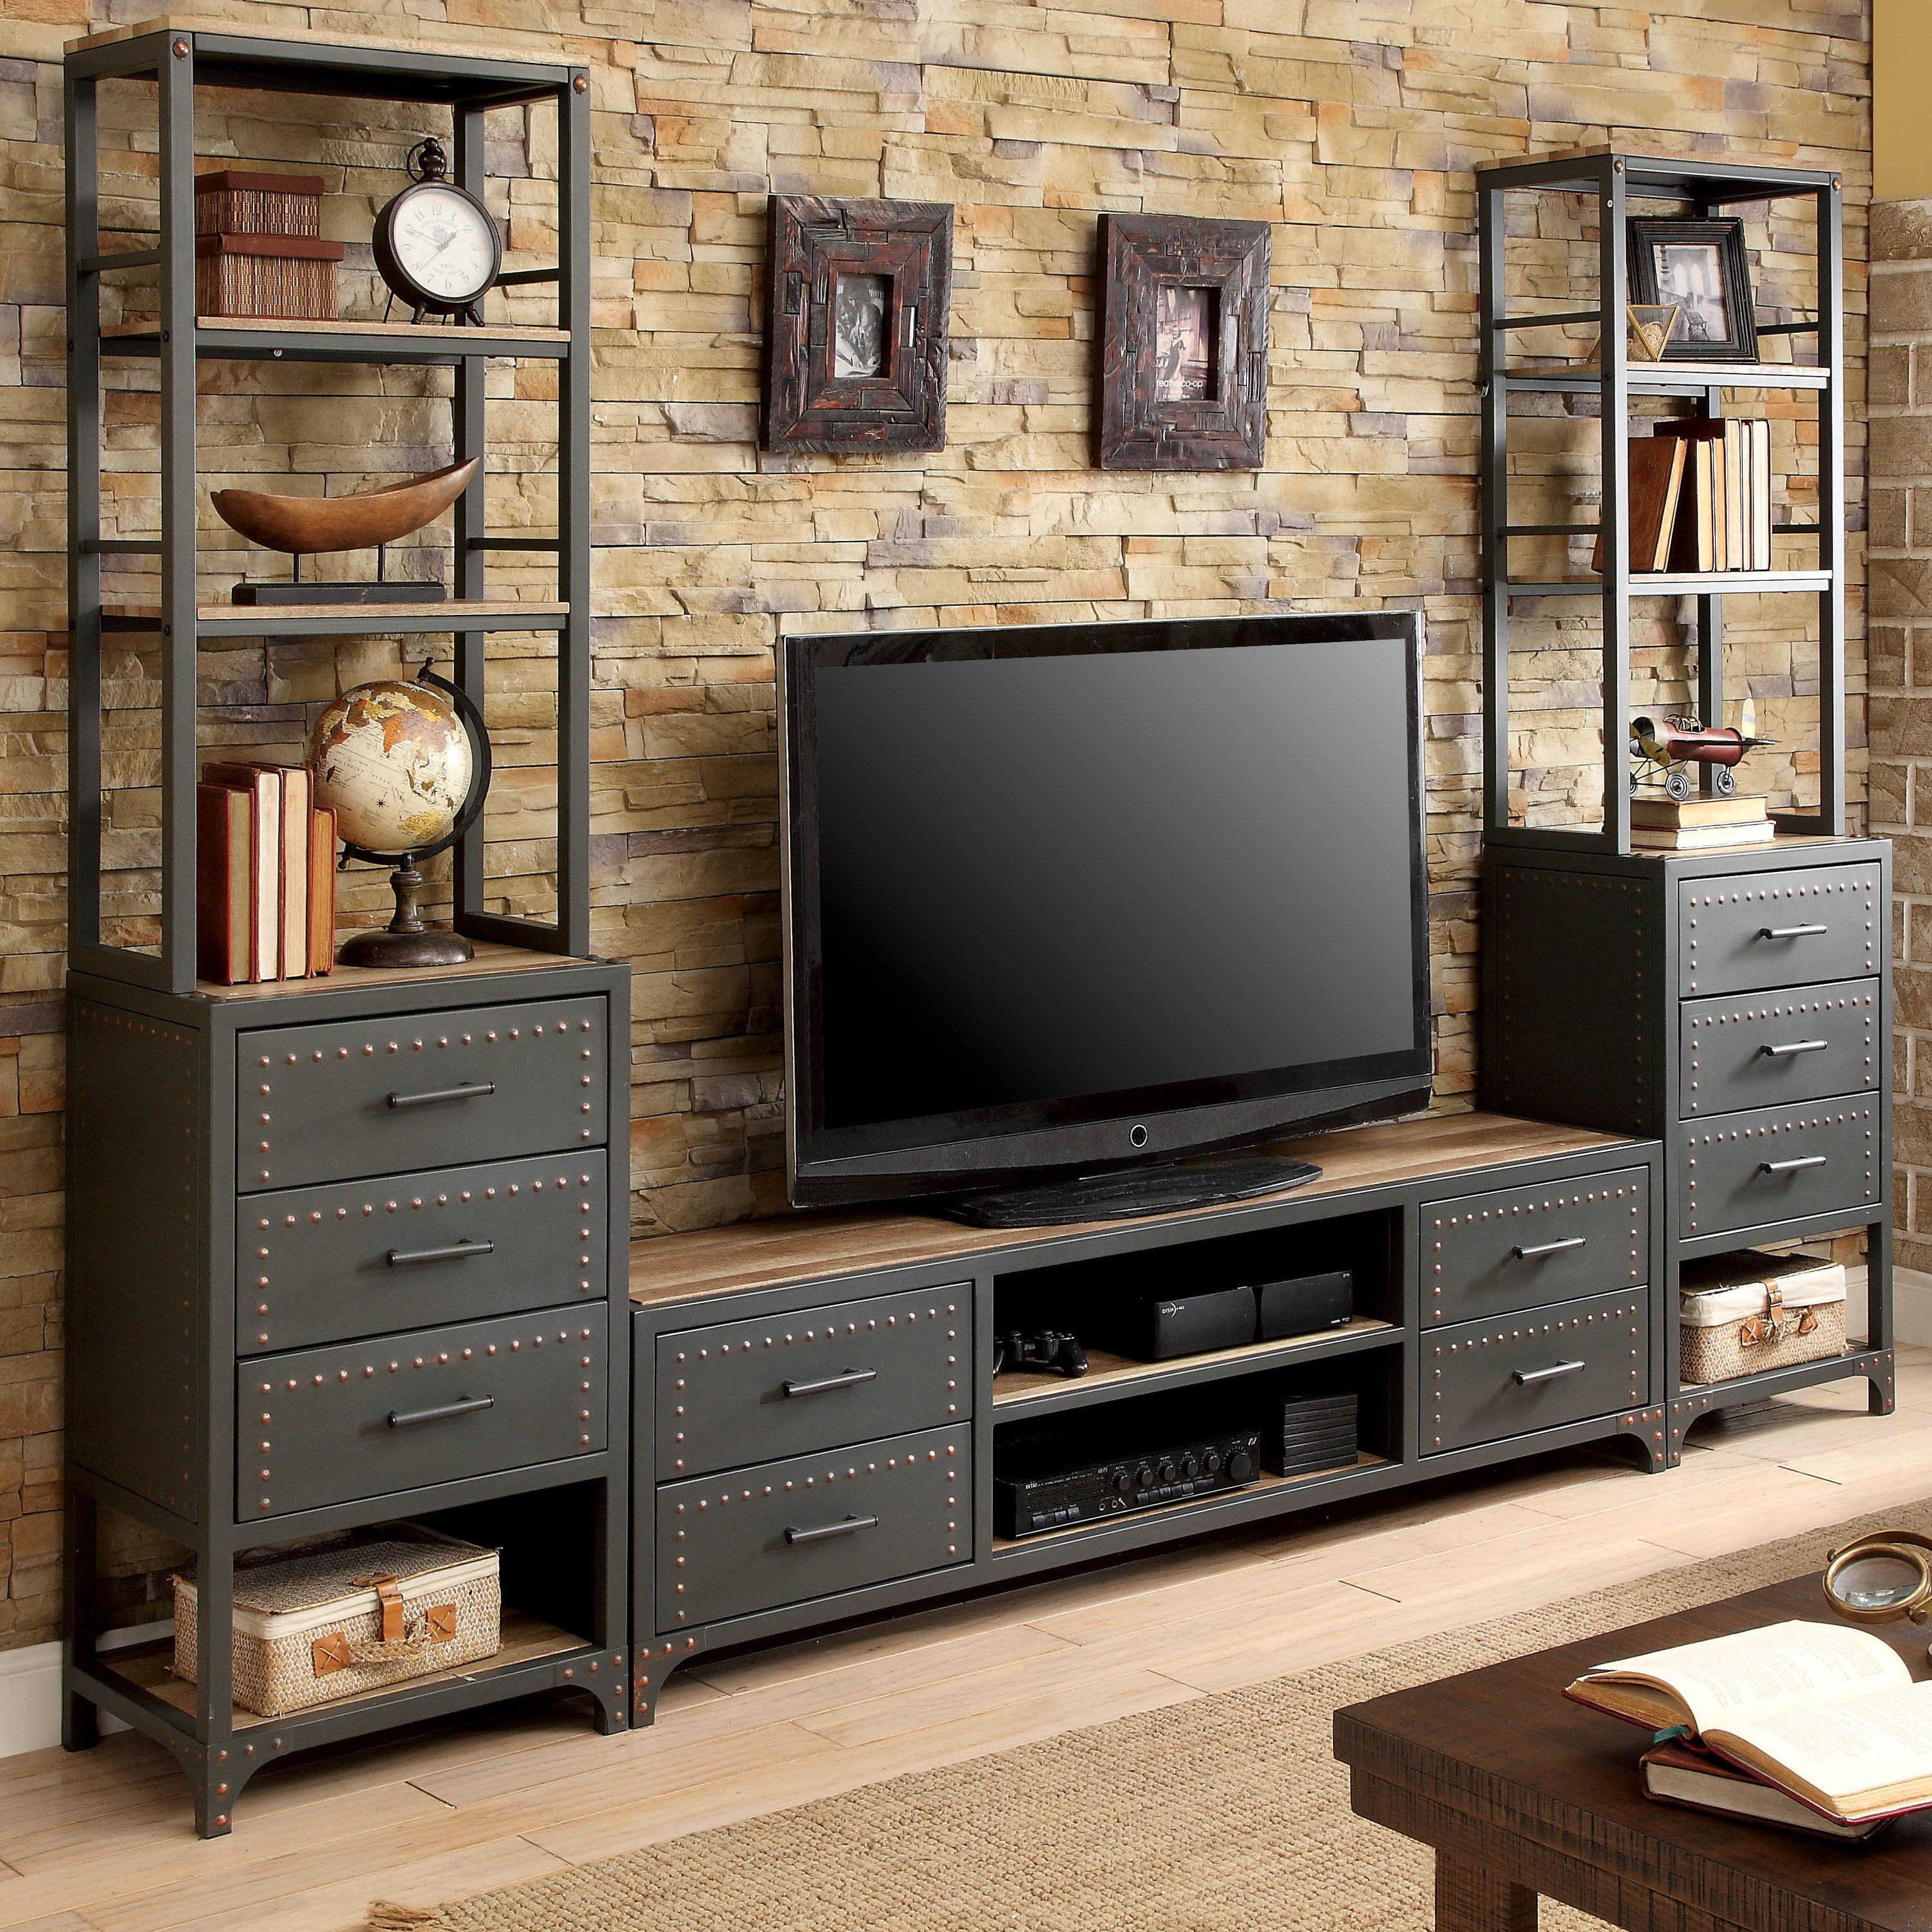 Industrial style furniture Pipe Shop Furniture Of America Vectra Industrial Style Metal Tv Stand On Sale Free Shipping Today Overstockcom 21142262 Pinterest Shop Furniture Of America Vectra Industrial Style Metal Tv Stand